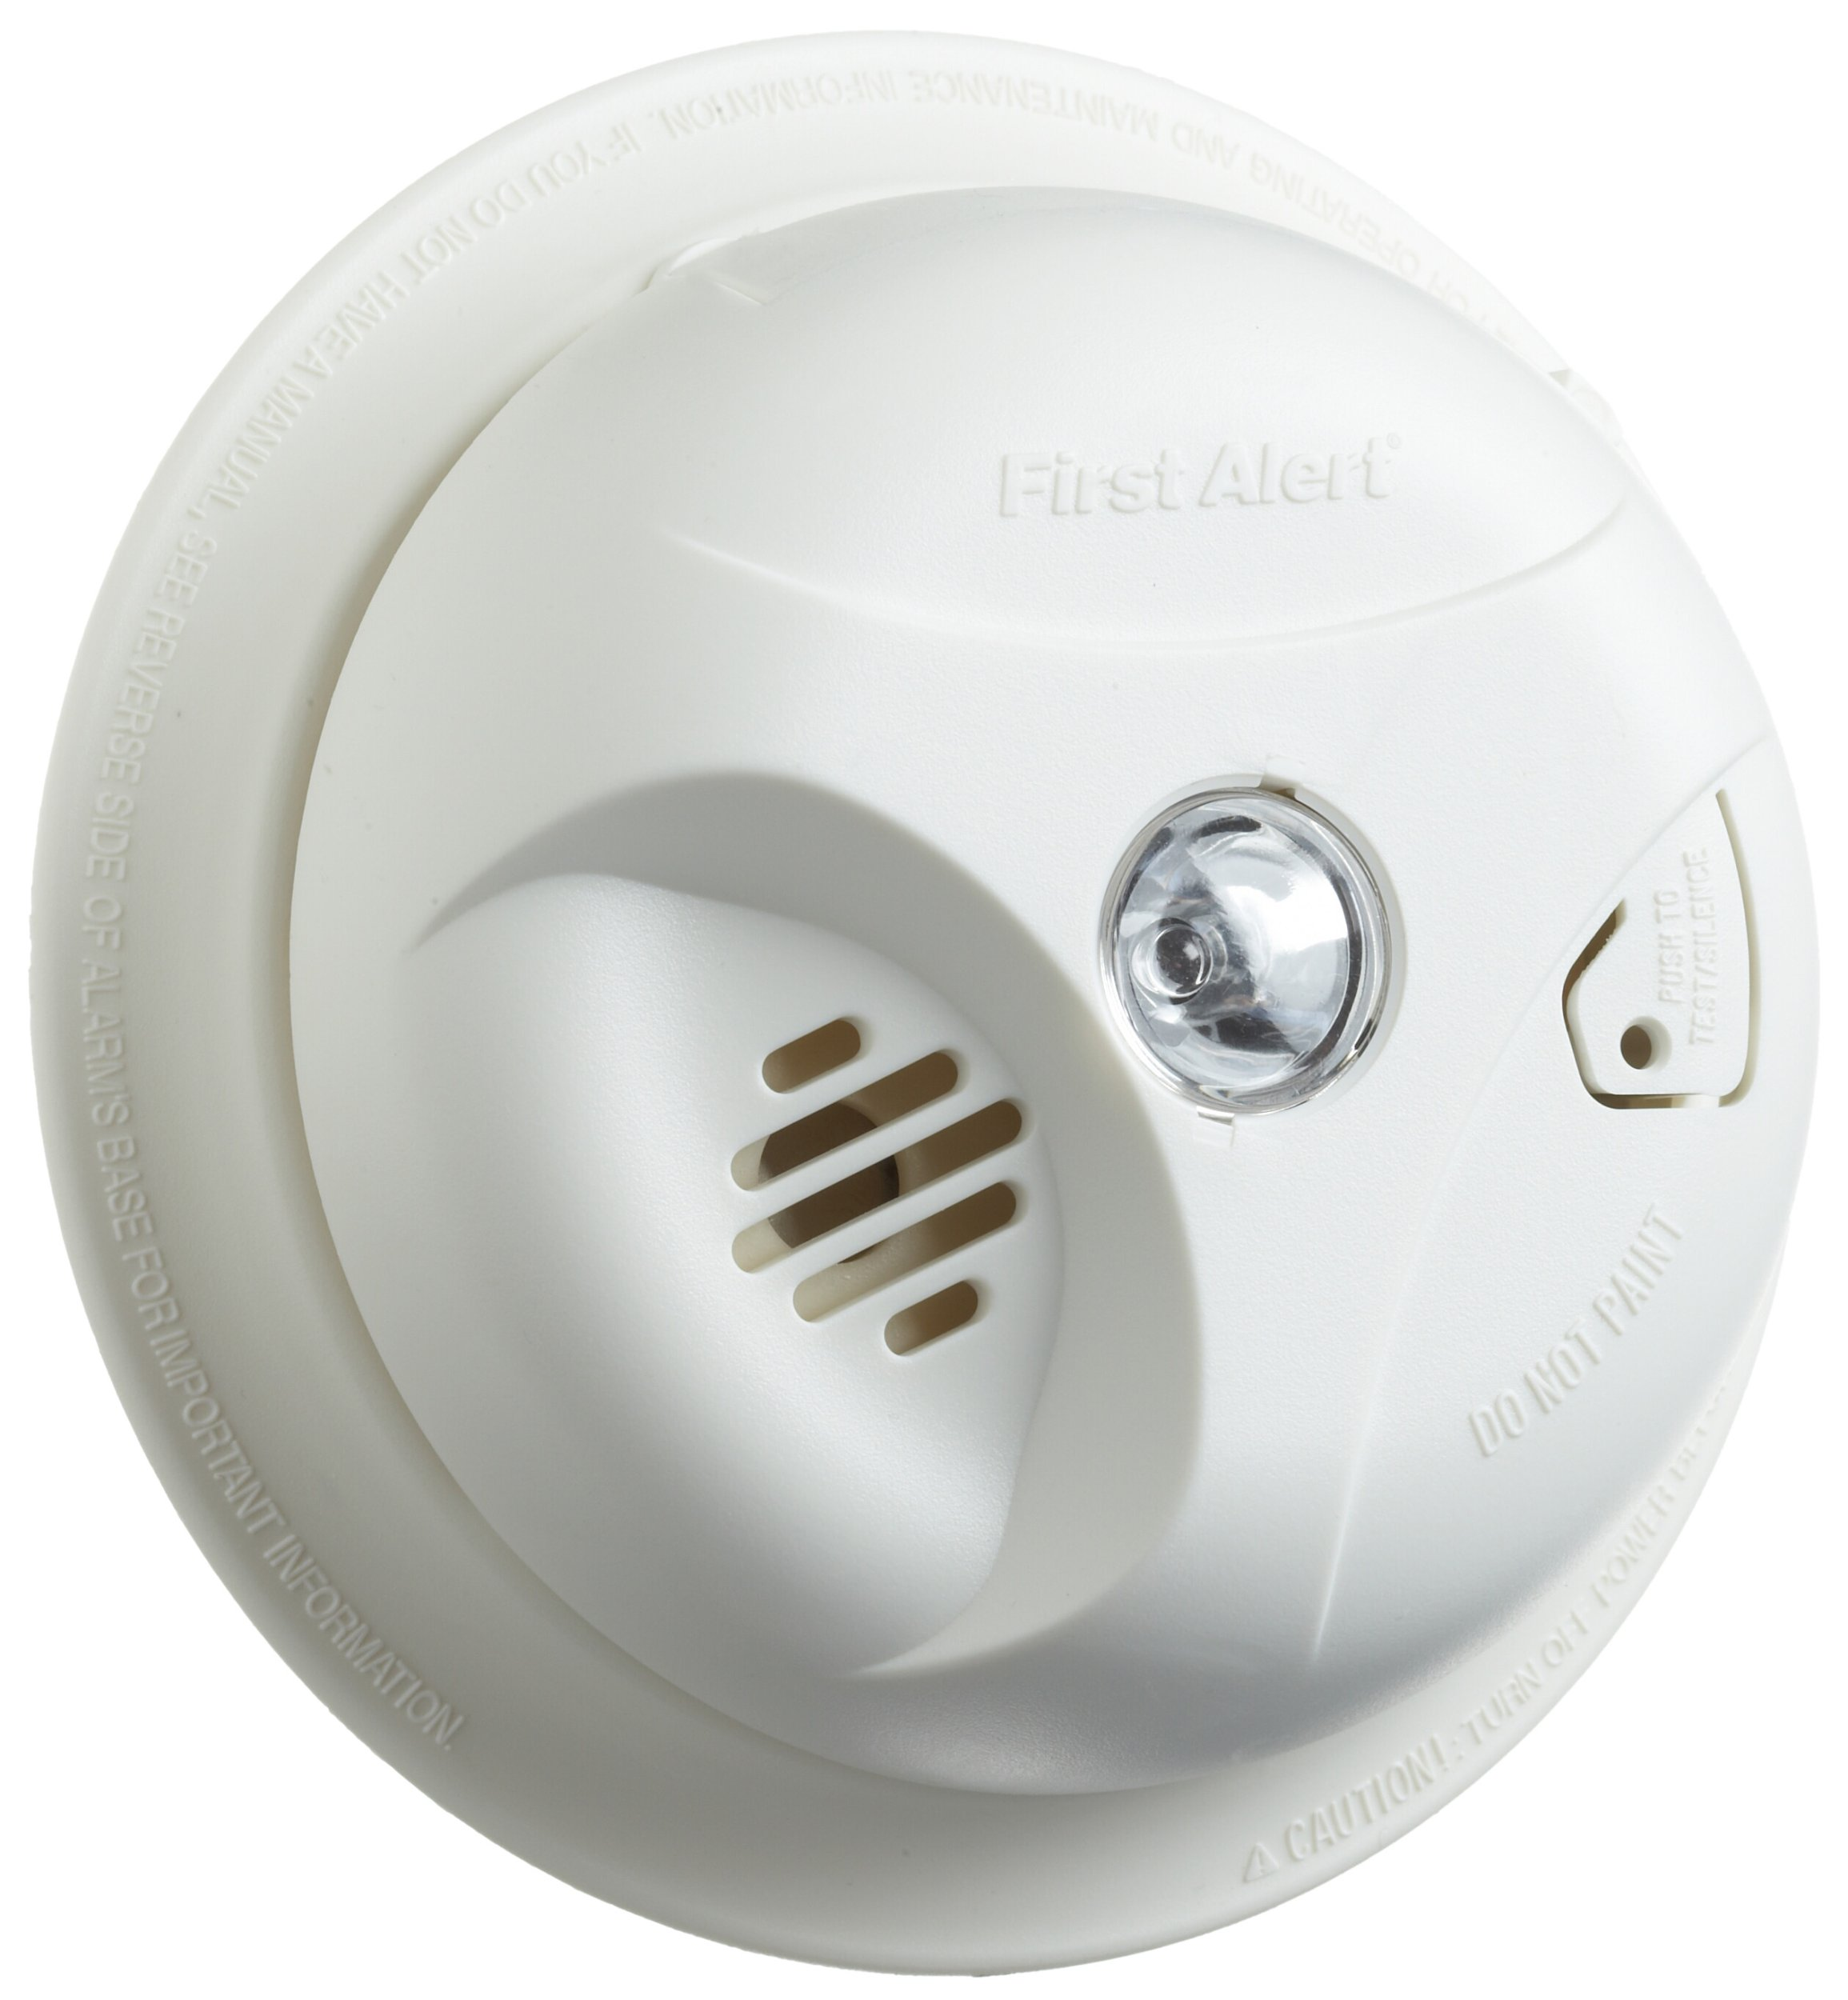 First Alert SA304LCN Smoke Alarm with Escape Light and Long Life Lithium Battery